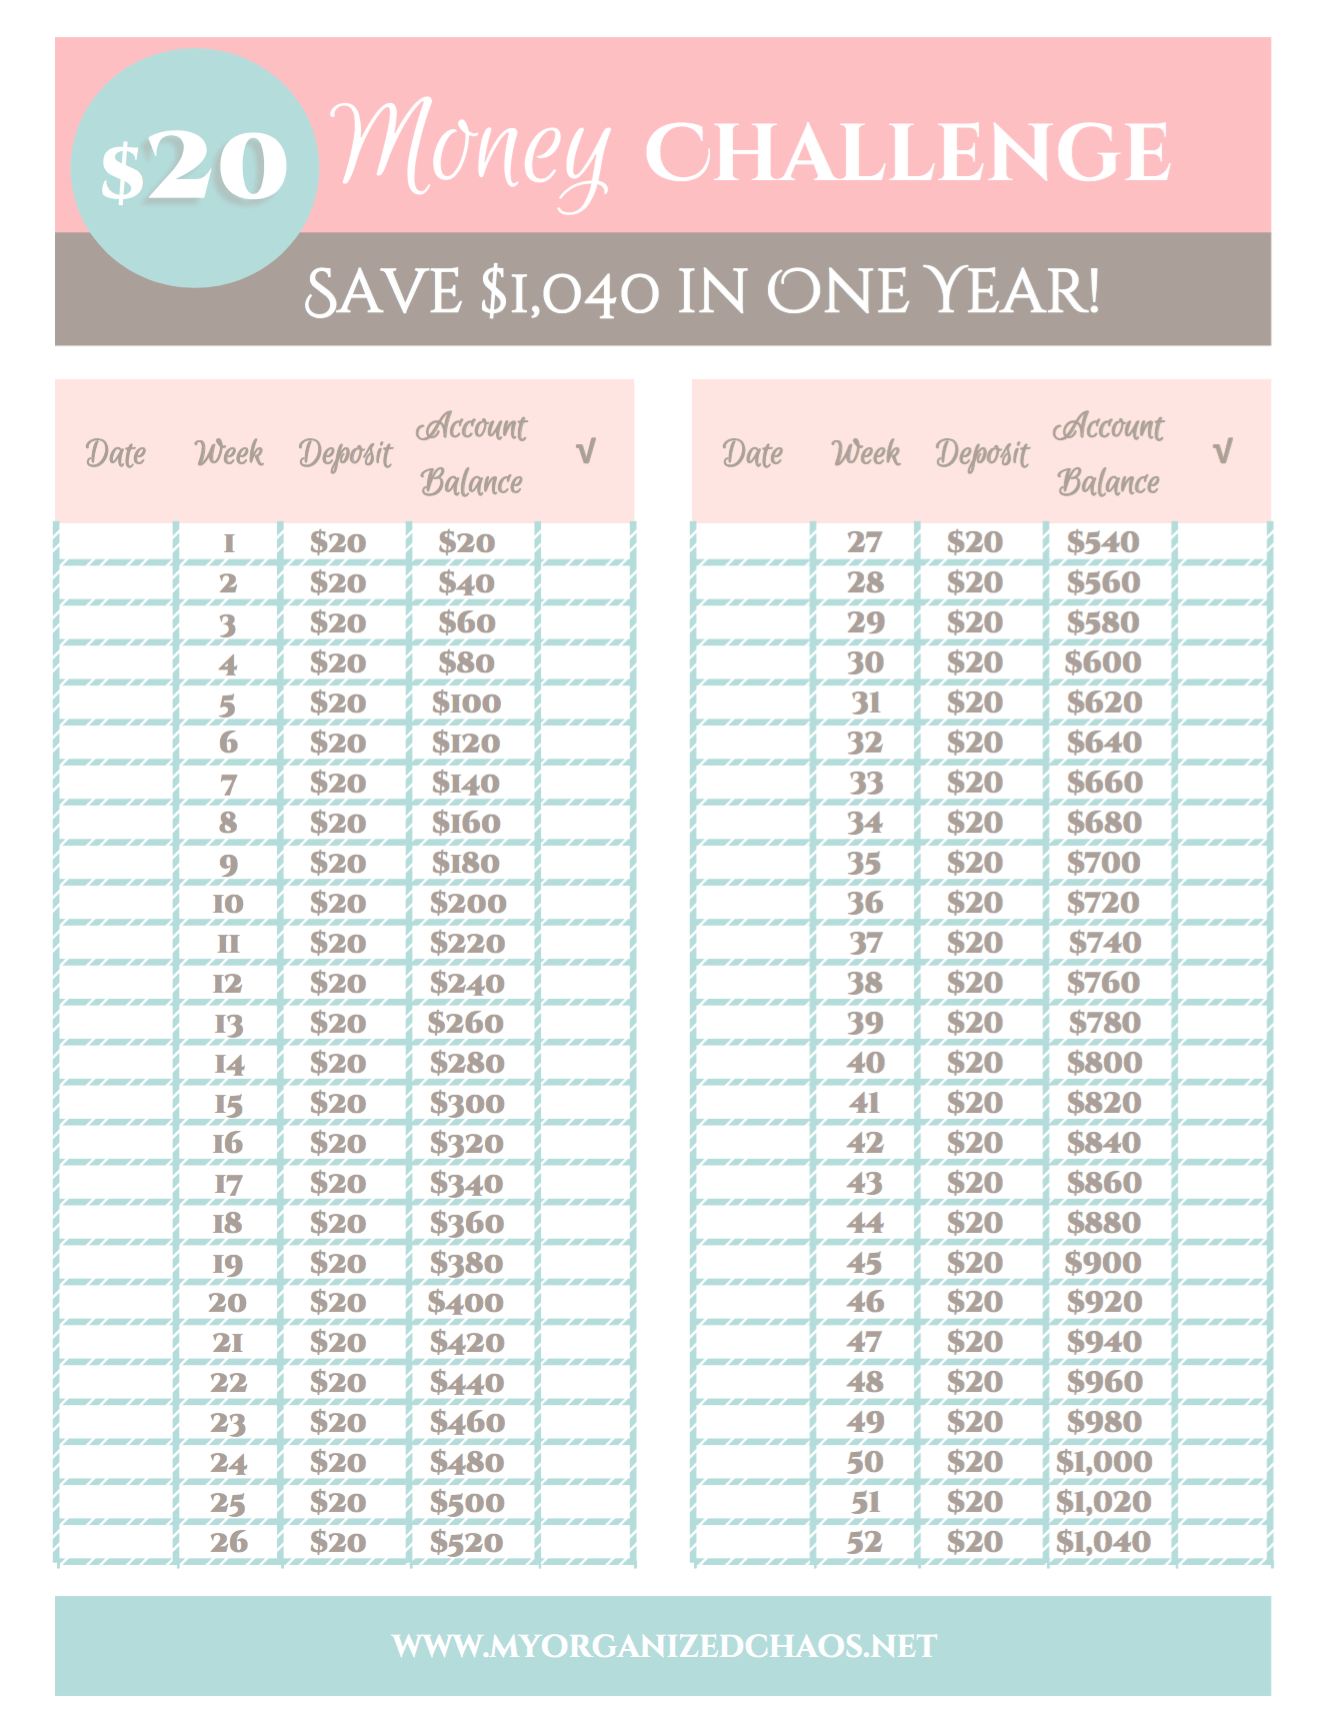 Easy Money Savings Challenges - My Organized Chaos